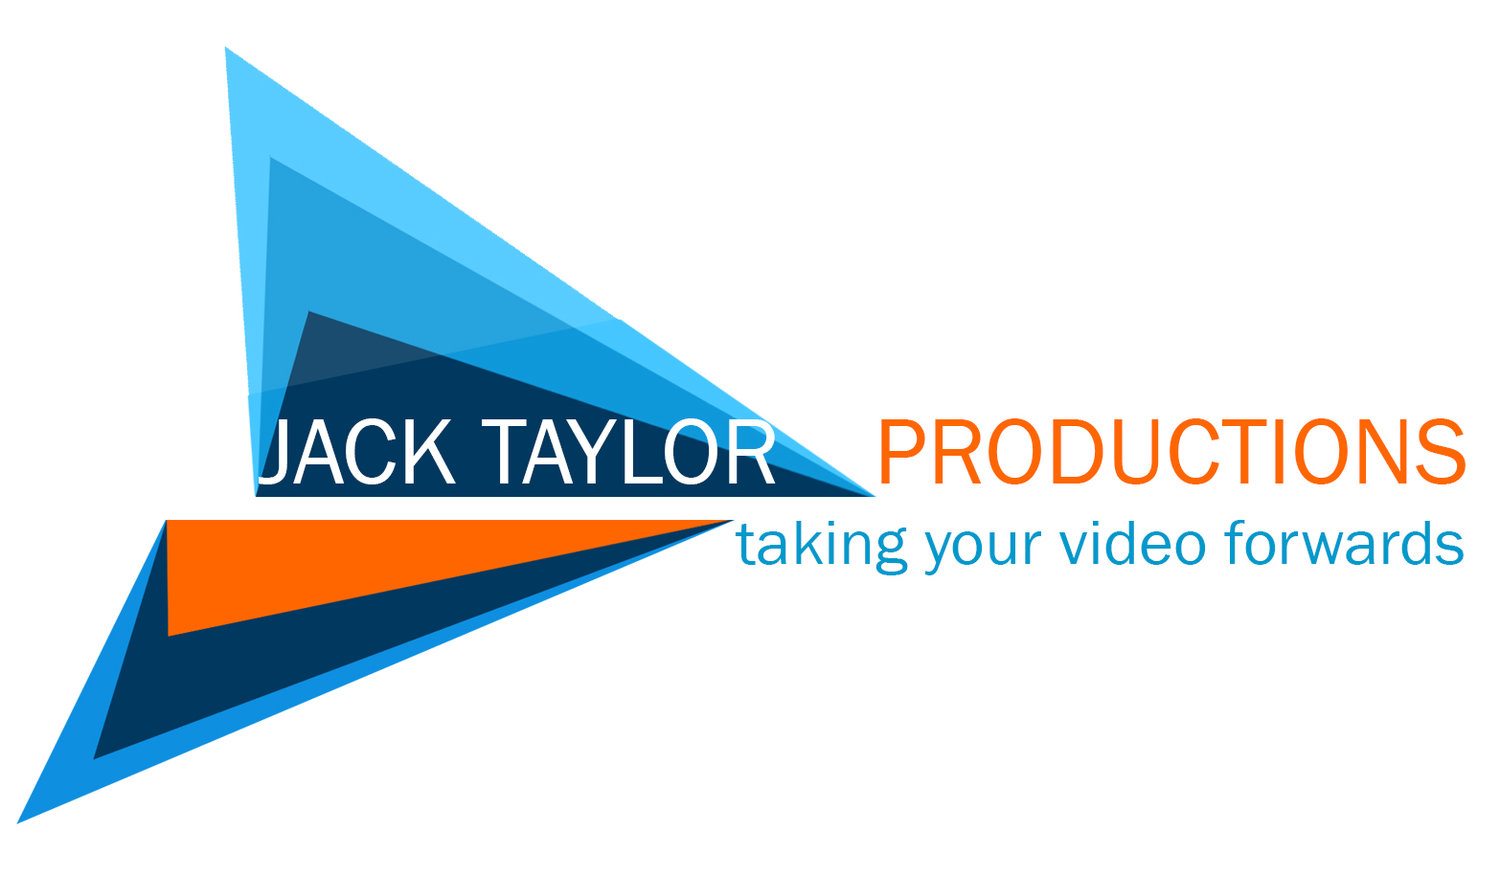 Jack Taylor Productions